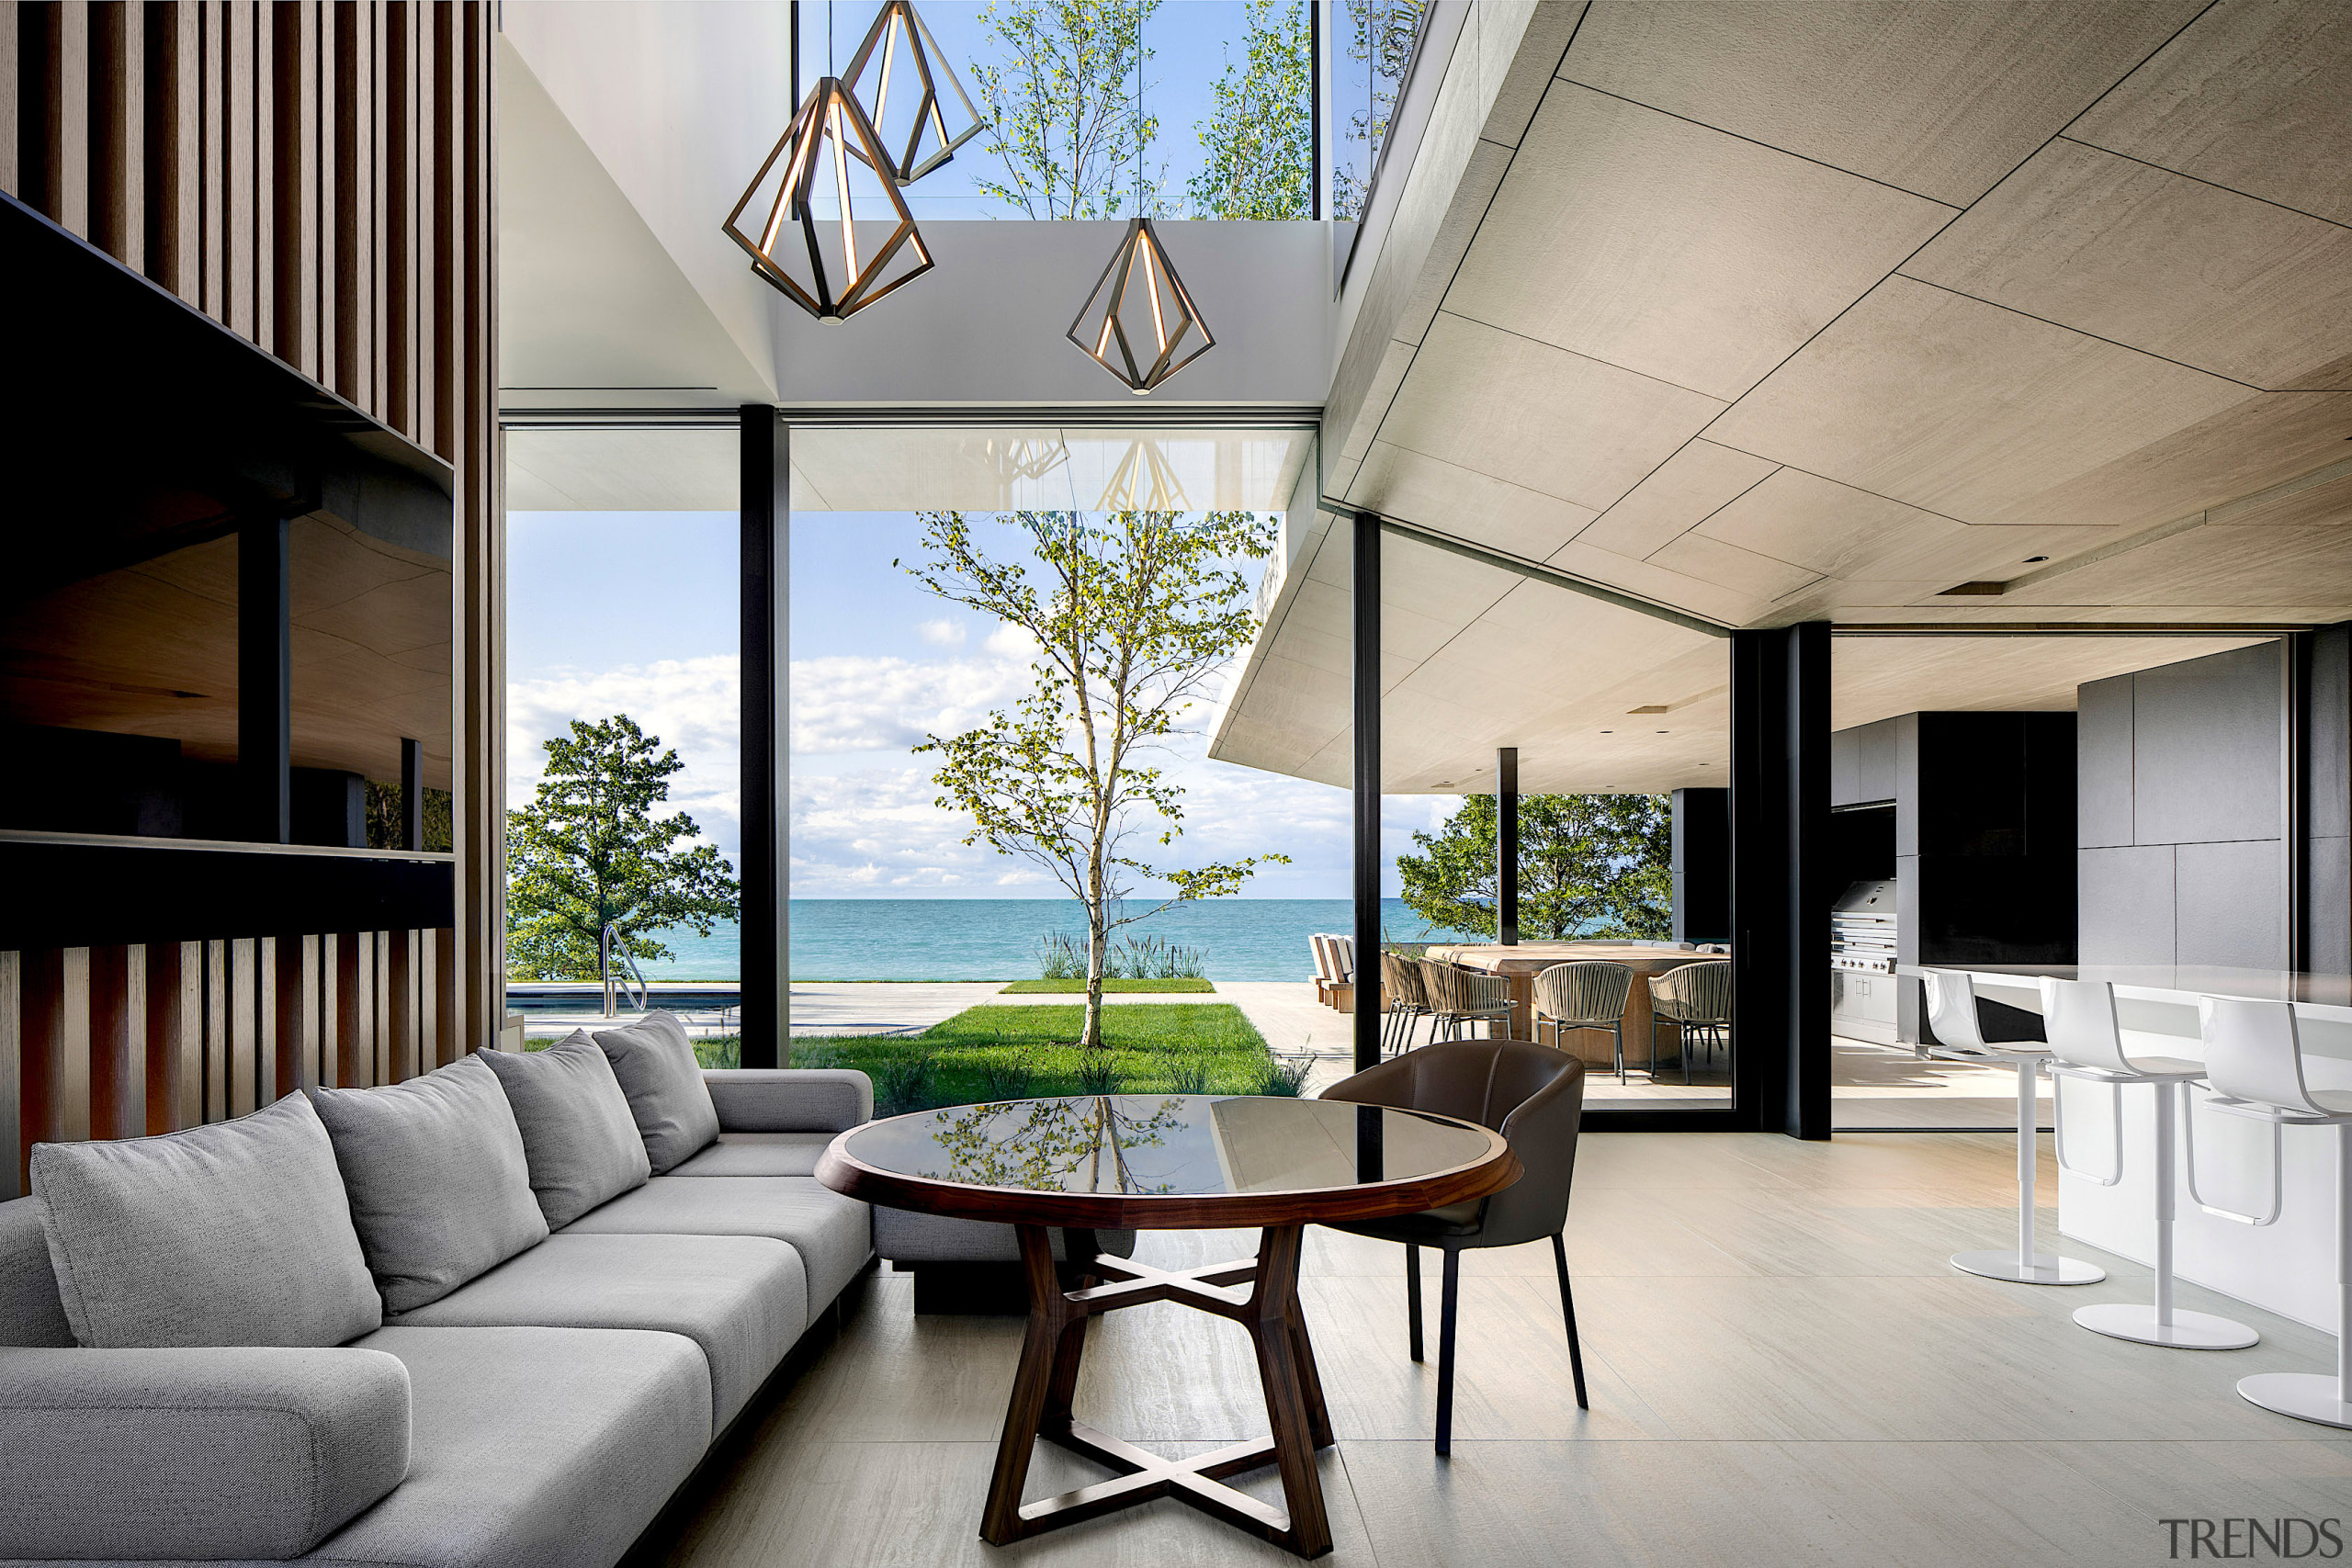 The dramatic triple-volume atrium lets in natural light